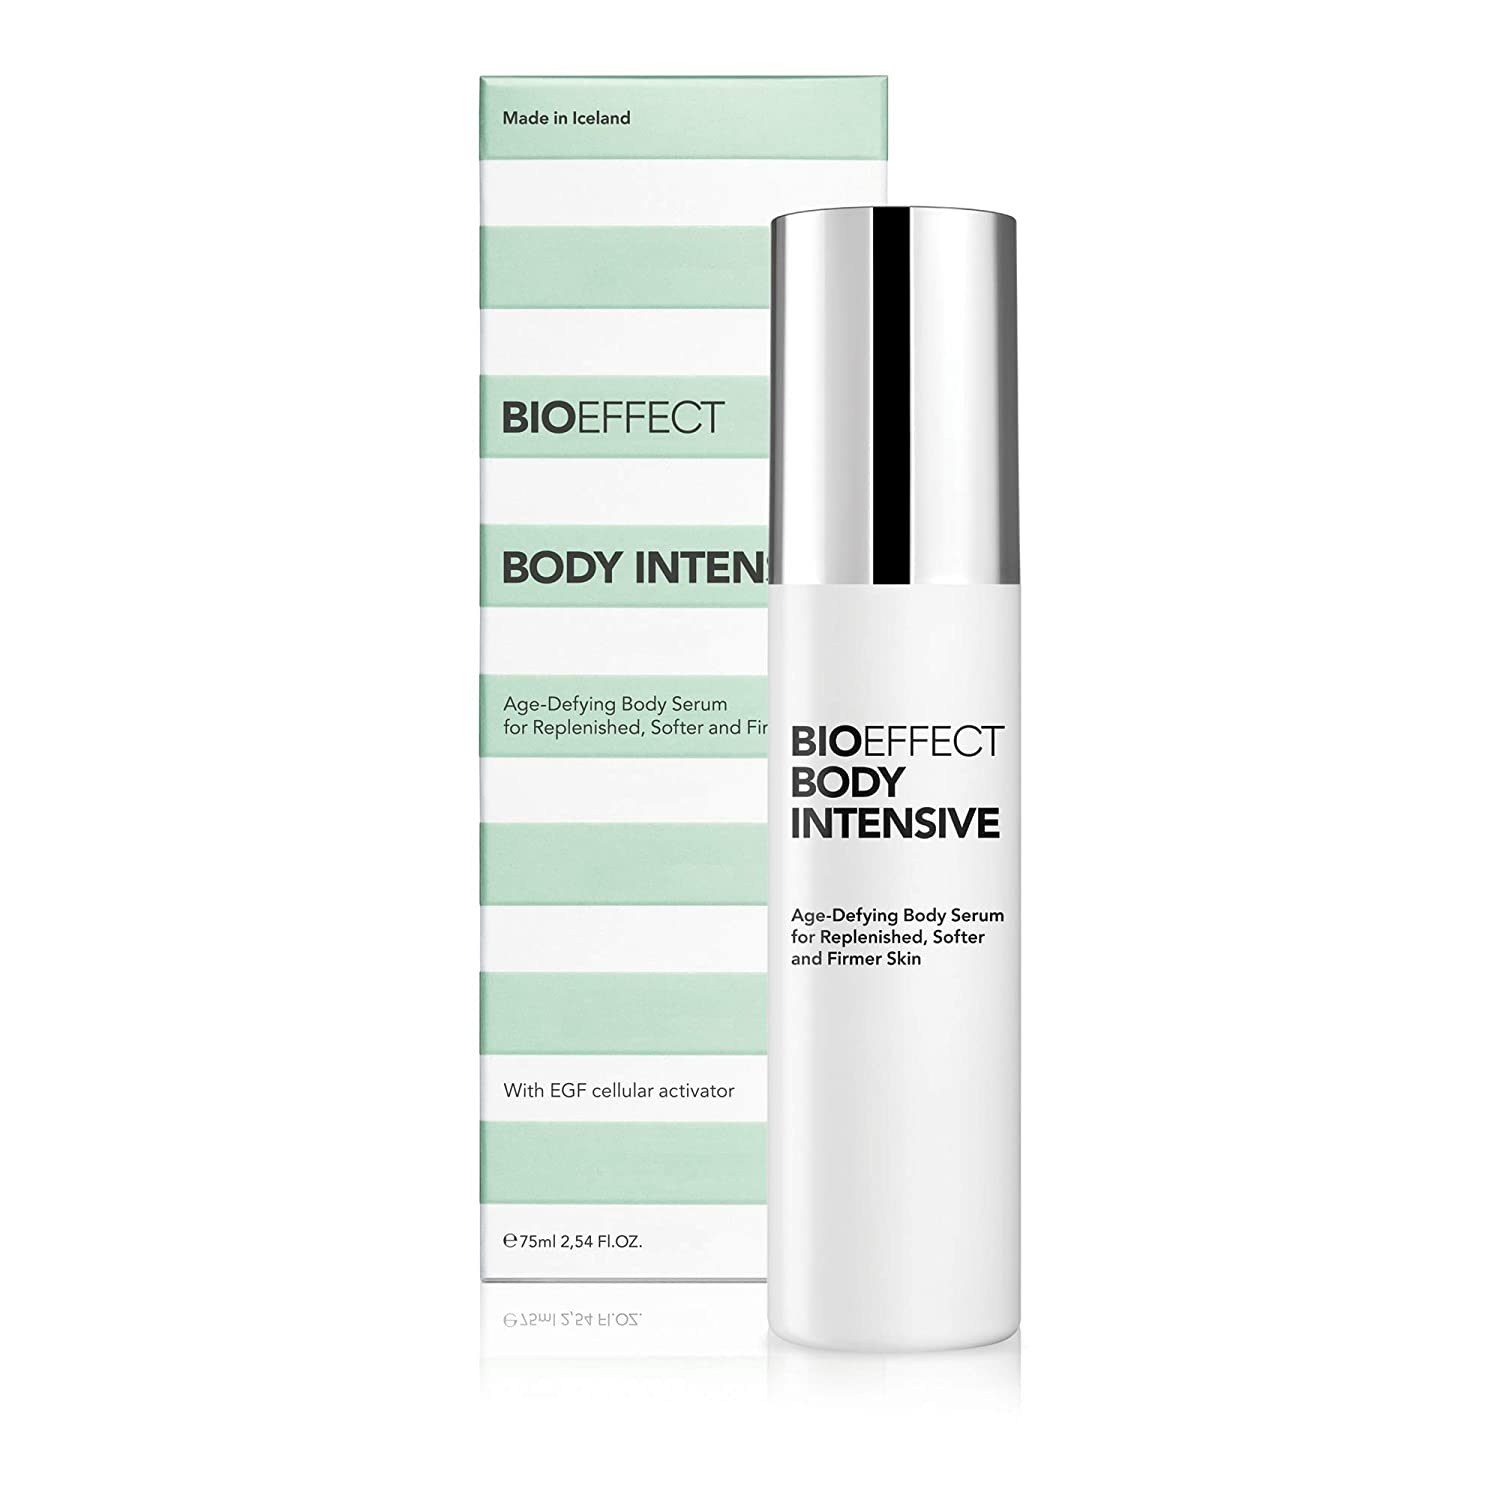 BIOEFFECT Body Intensive Anti-aging, Moisturizing Cream with EGF & Hyaluronic Acid for Neck, Chest, Hands, Arms & Legs, Natural Lotion to Boost Collagen, Hydrate, Smooth, Firm & Tone Crepey Skin